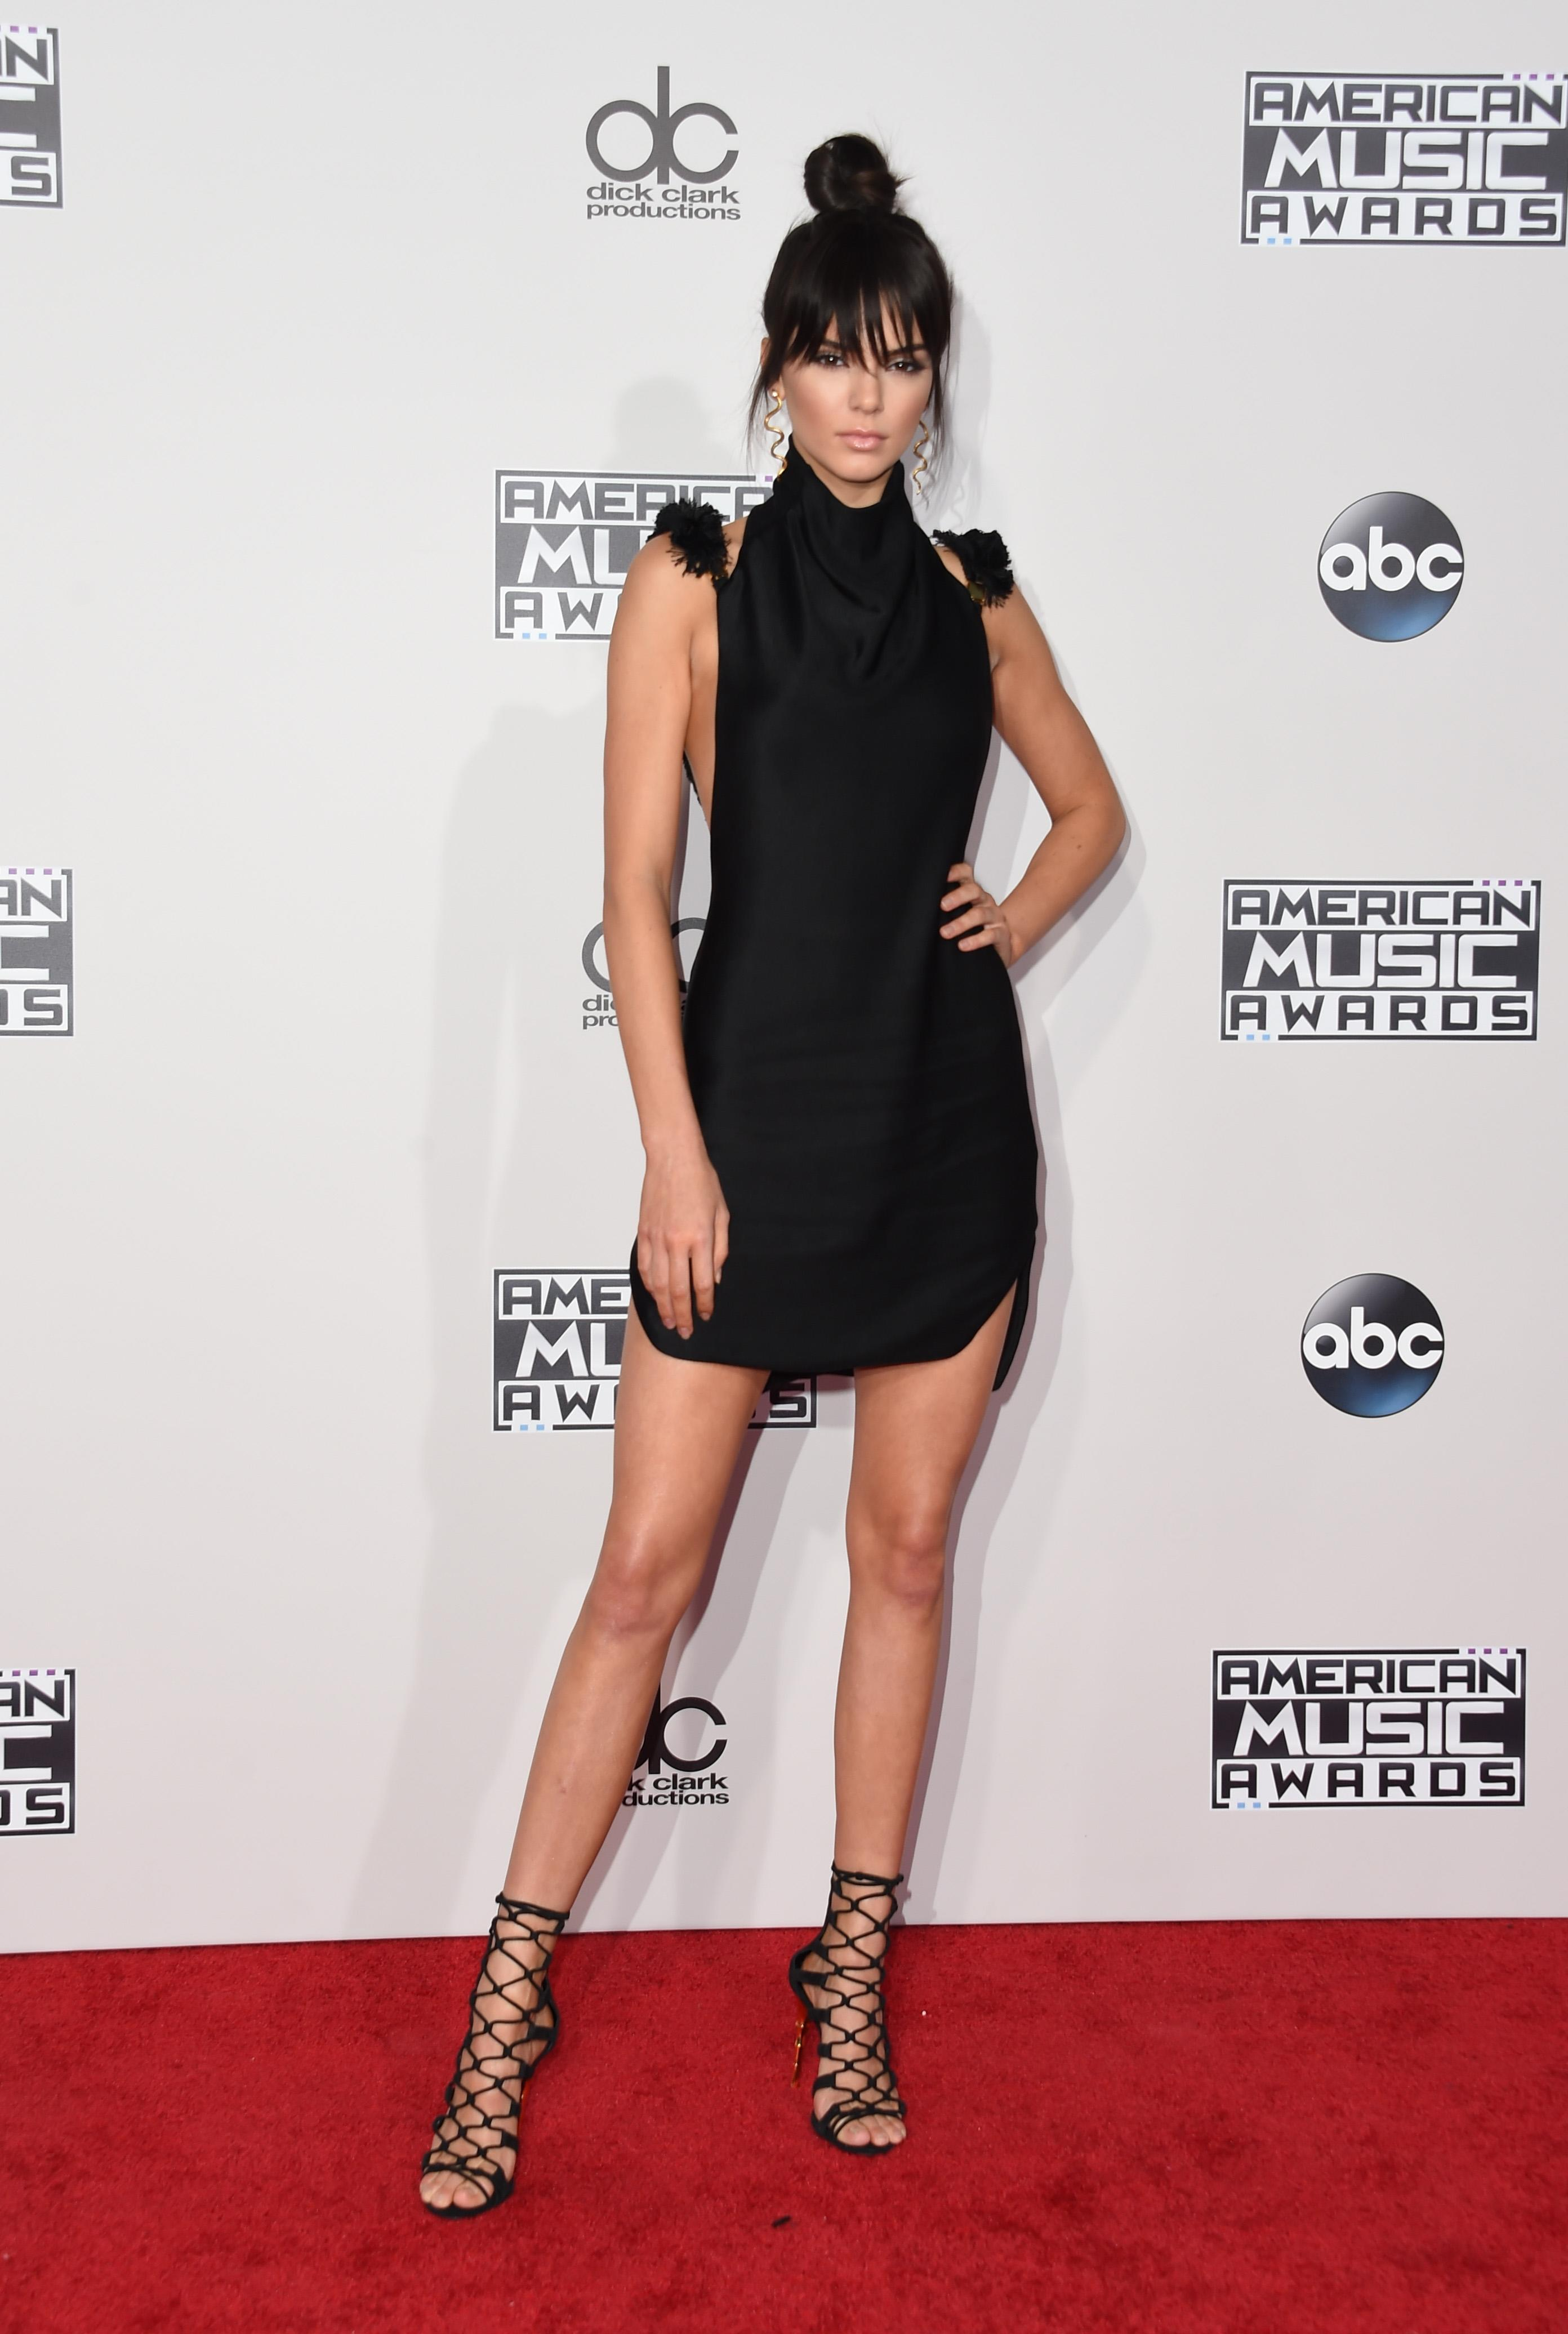 Kendall Jenner was a leading top model in 2015.